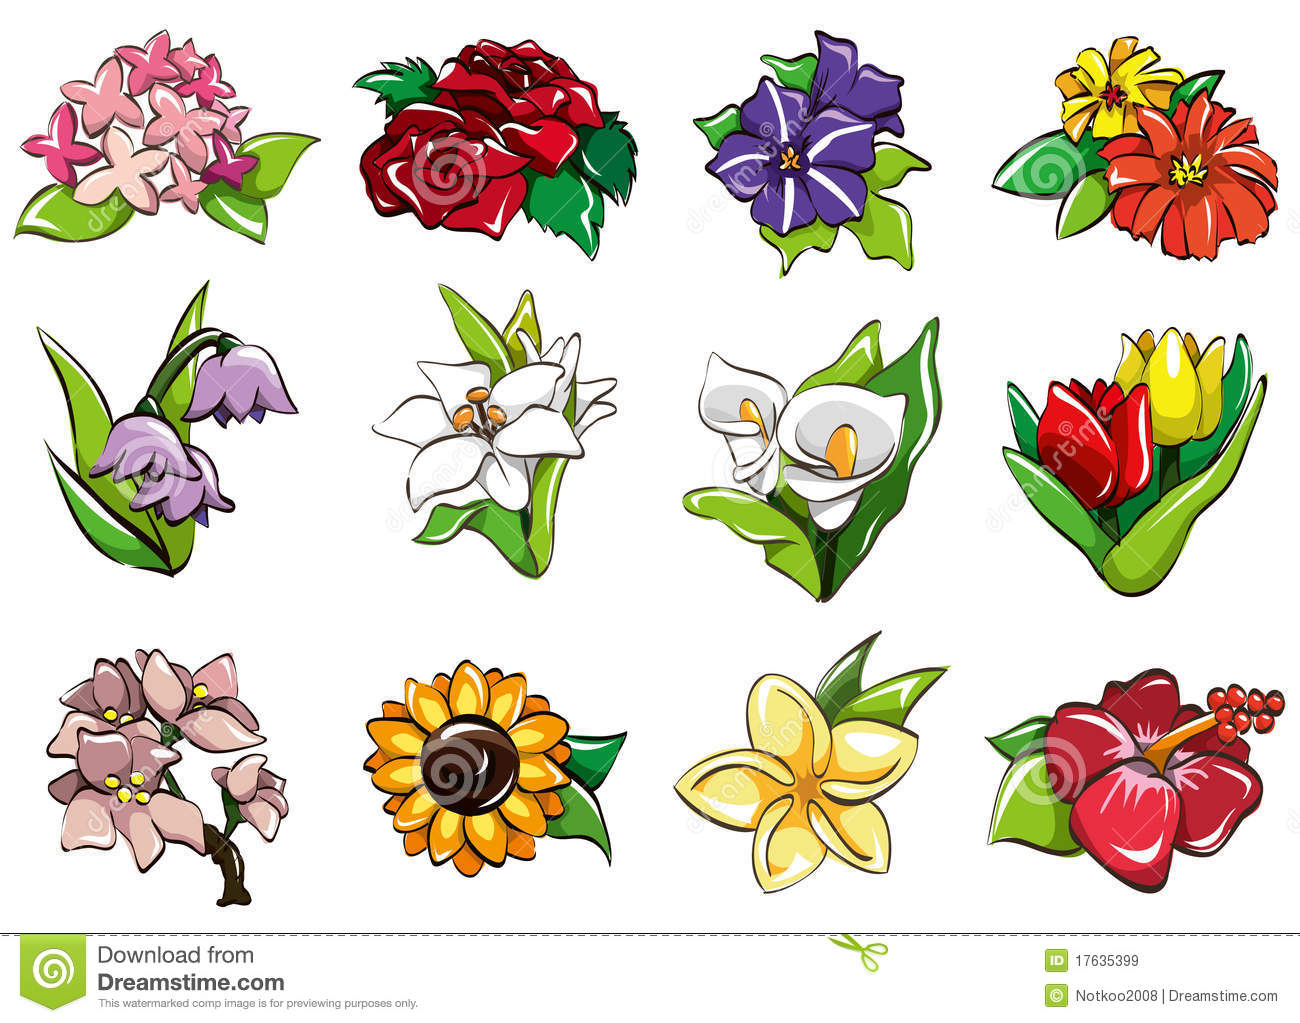 flower drawing cartoon at getdrawings com free for personal use rh getdrawings com how to draw cartoon flowers step by step how to draw easy cartoon flowers